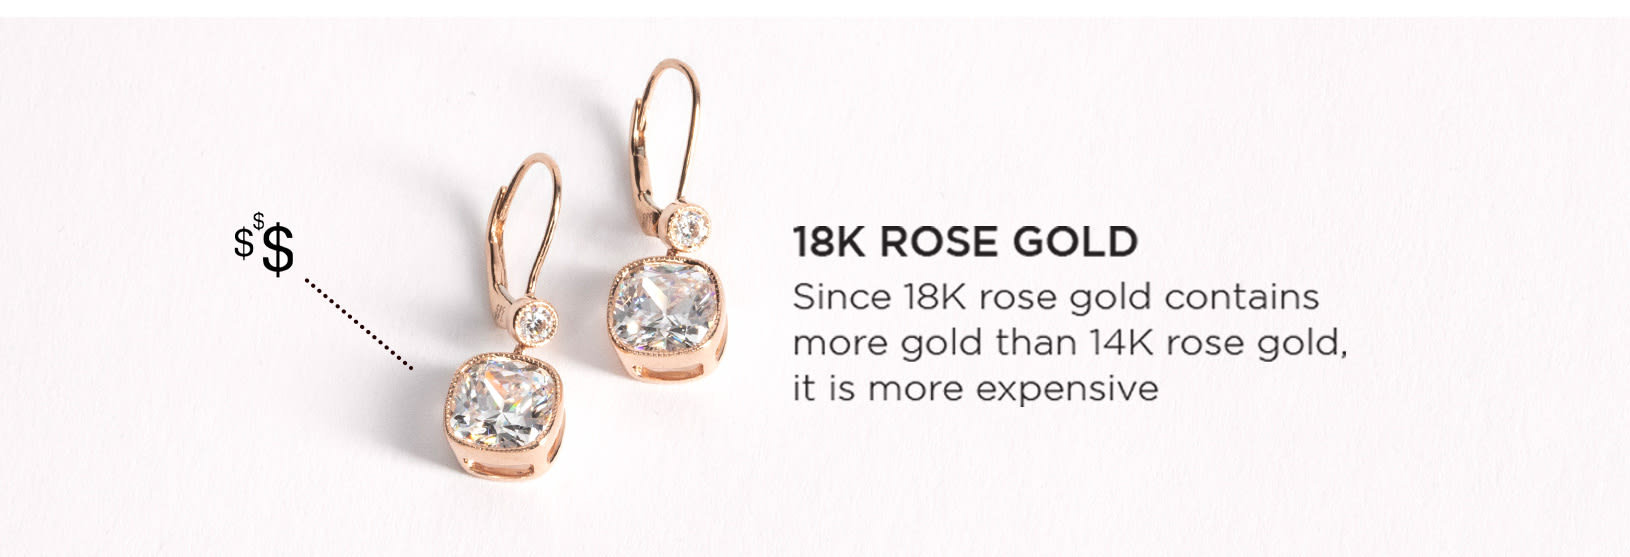 18K rose gold is more expensive than 14K rose gold